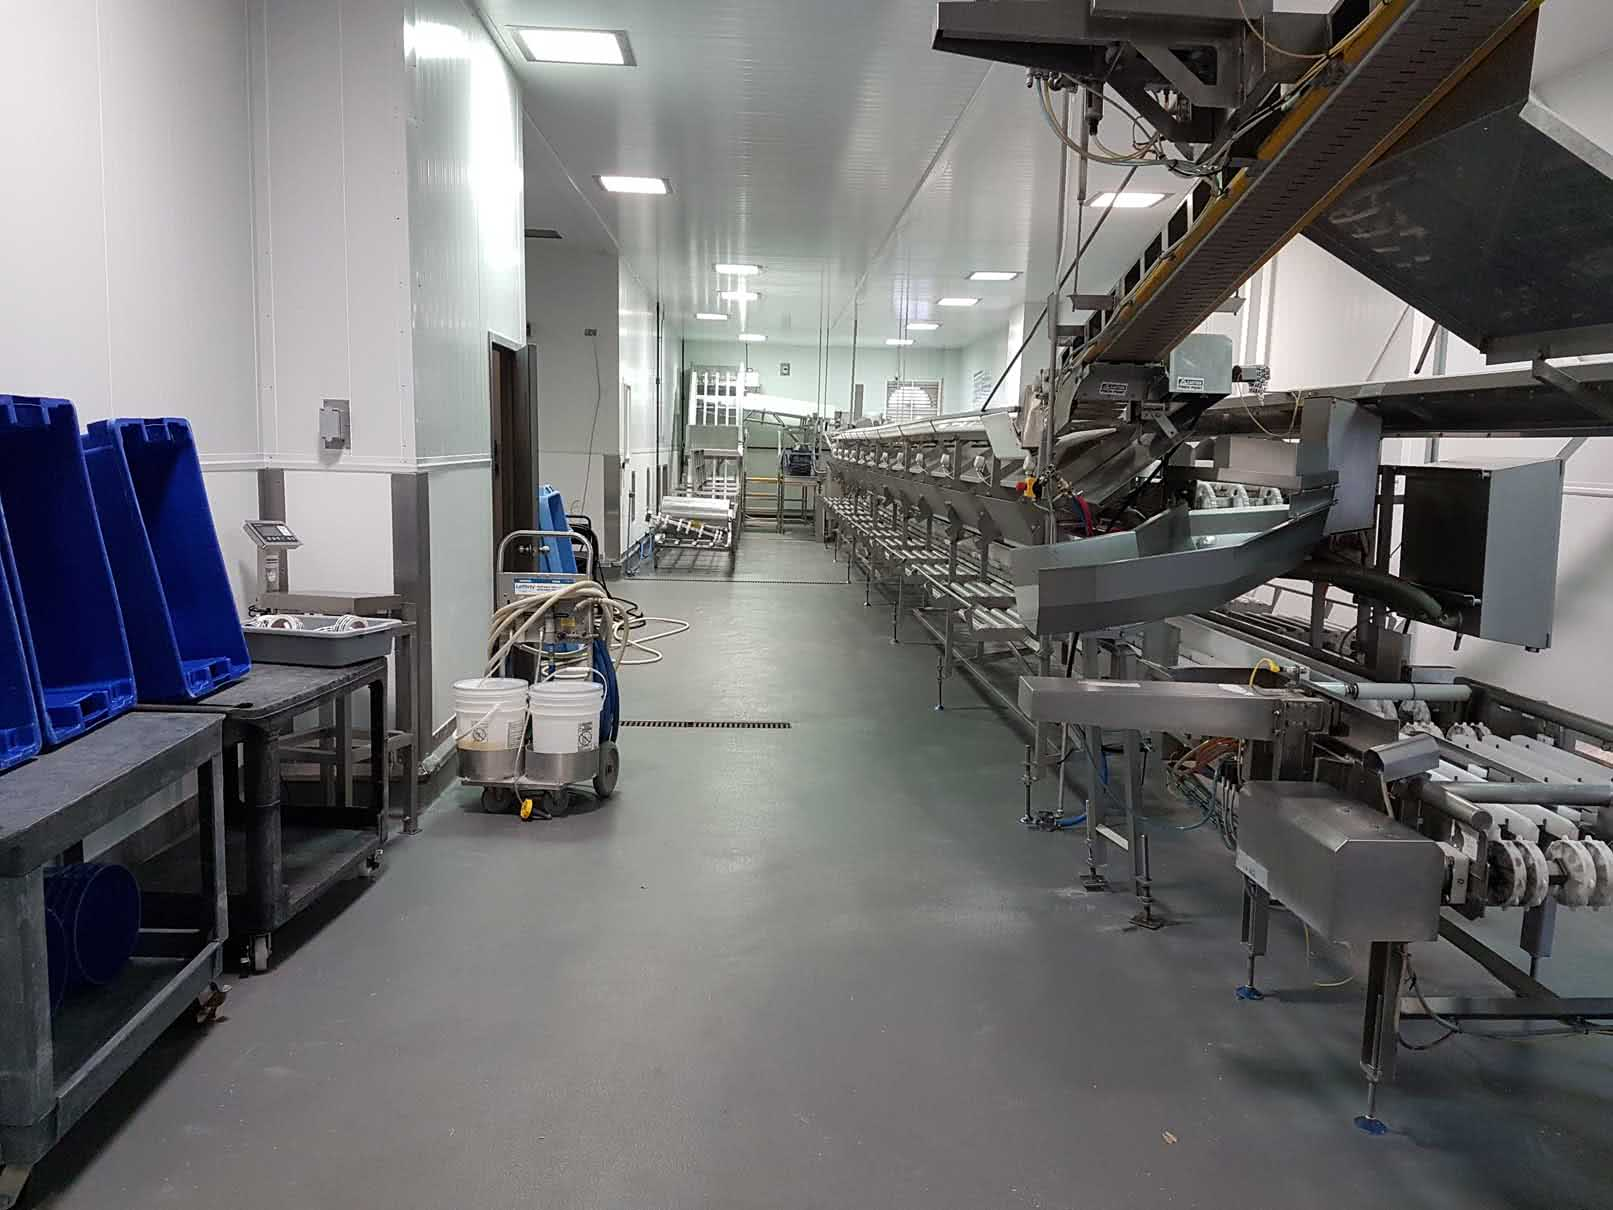 Epoxy and urethane concrete floor coating at Cermaq food processing